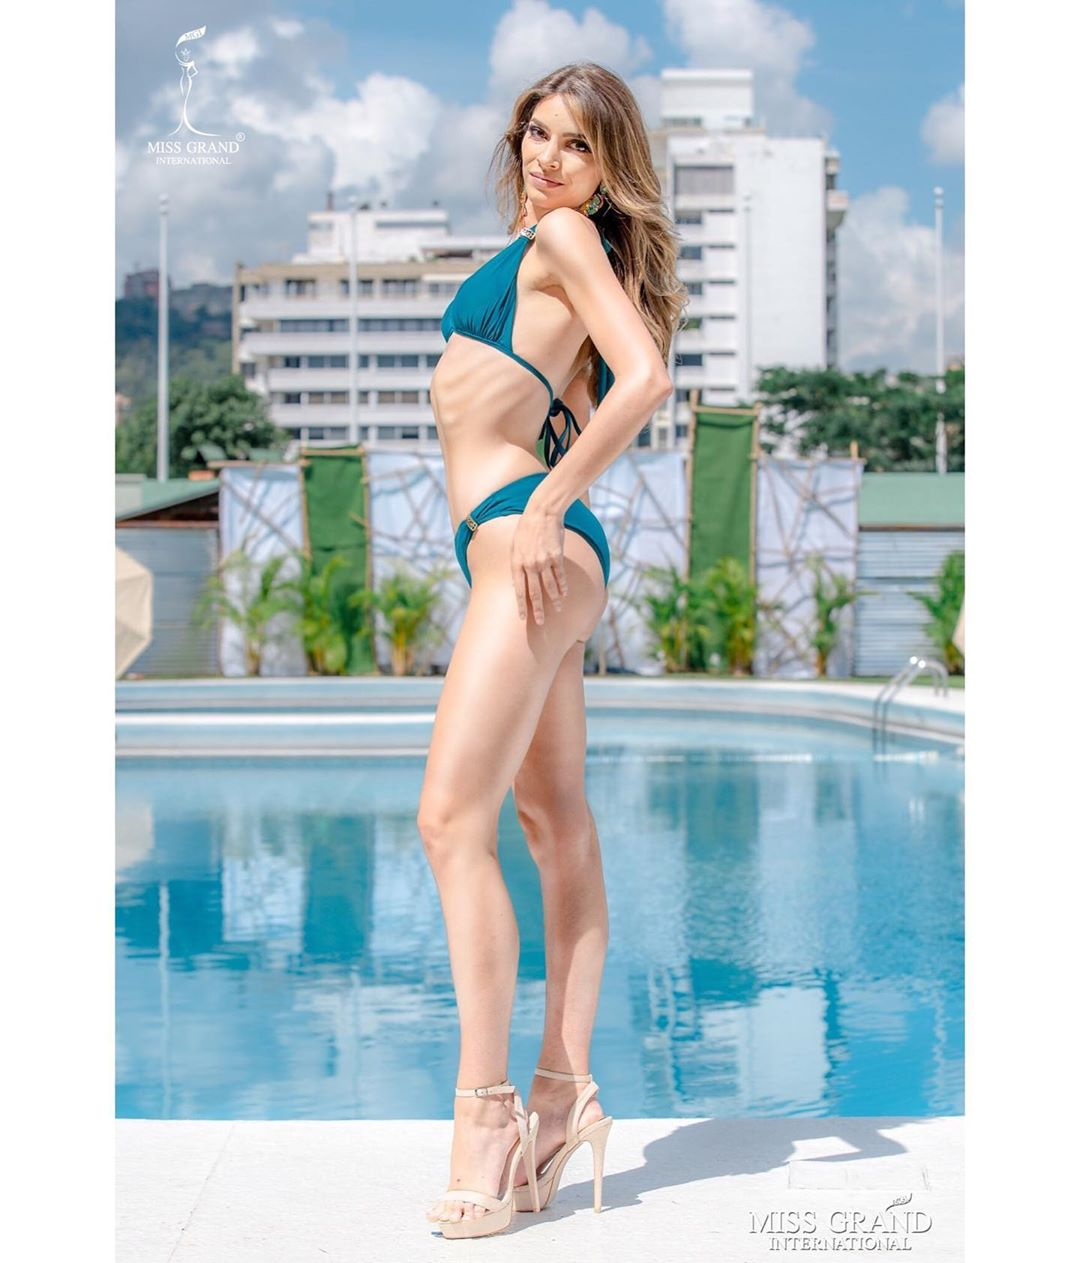 ainara de santamaria villamor, top 21 de miss grand international 2019/miss world cantabria 2018/miss earth spain 2017. - Página 16 72684310